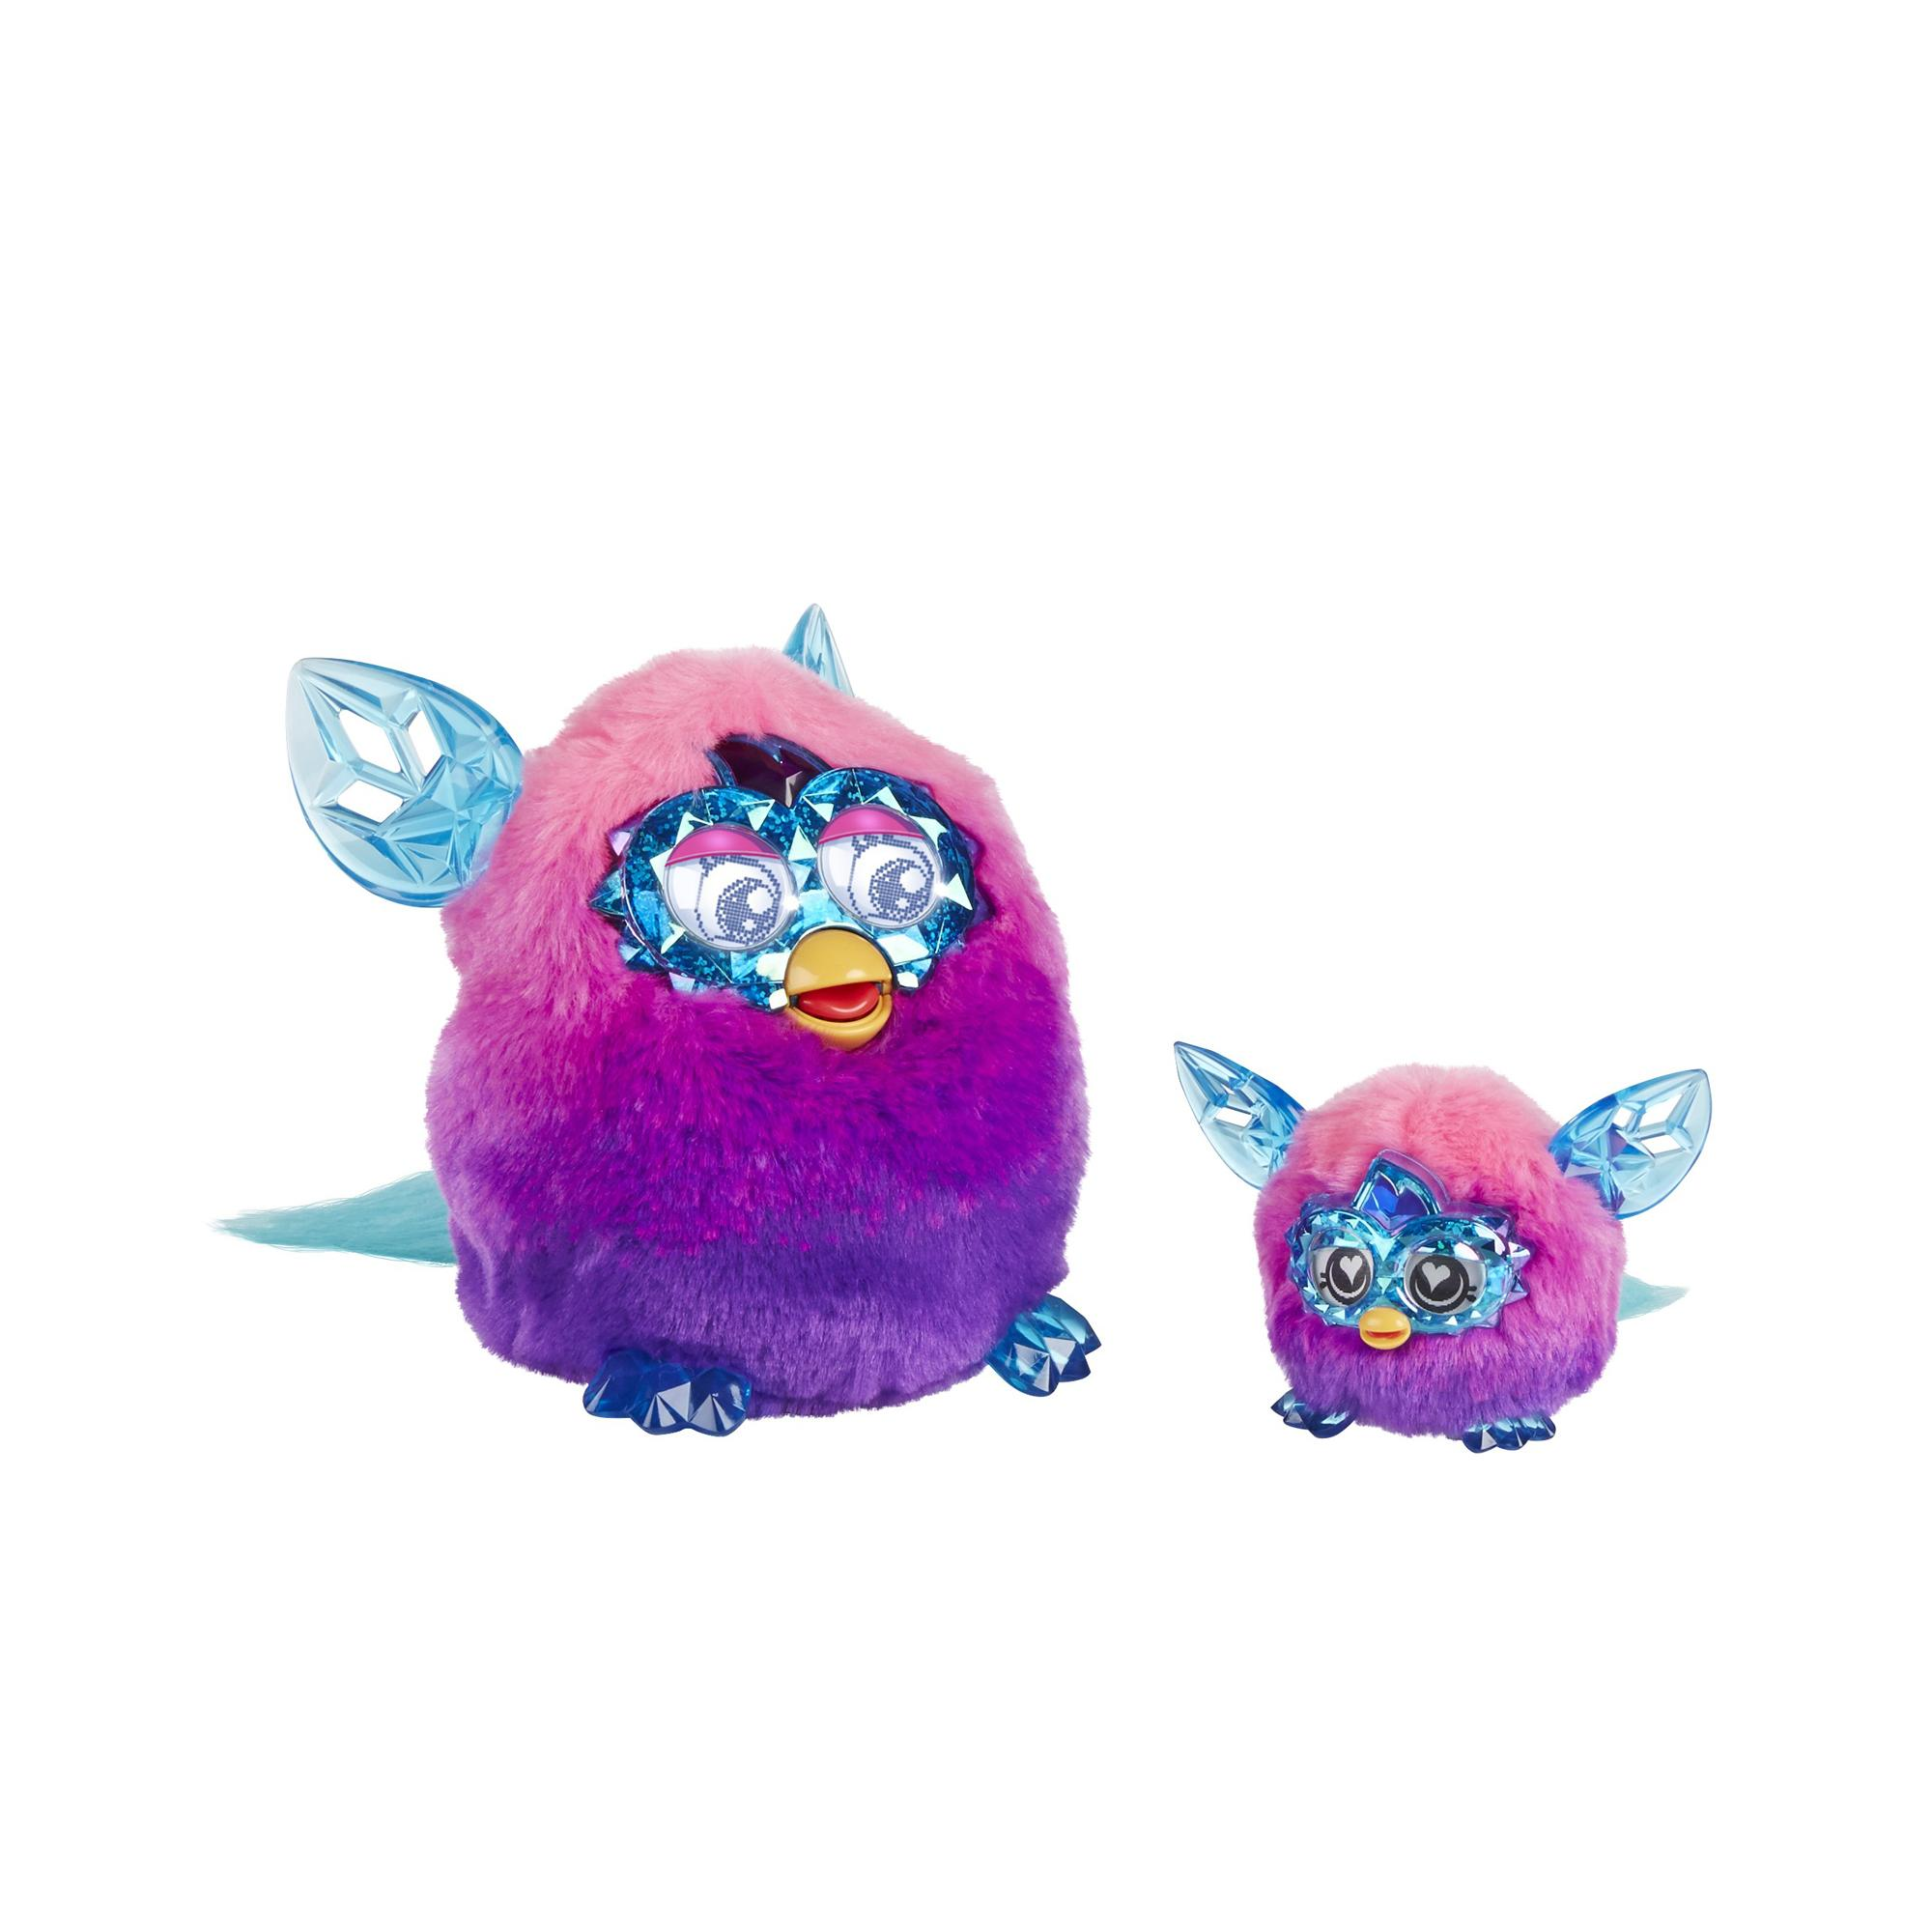 Amazon.com: Furby Furblings Creature Plush, Pink/Purple: Toys & Games